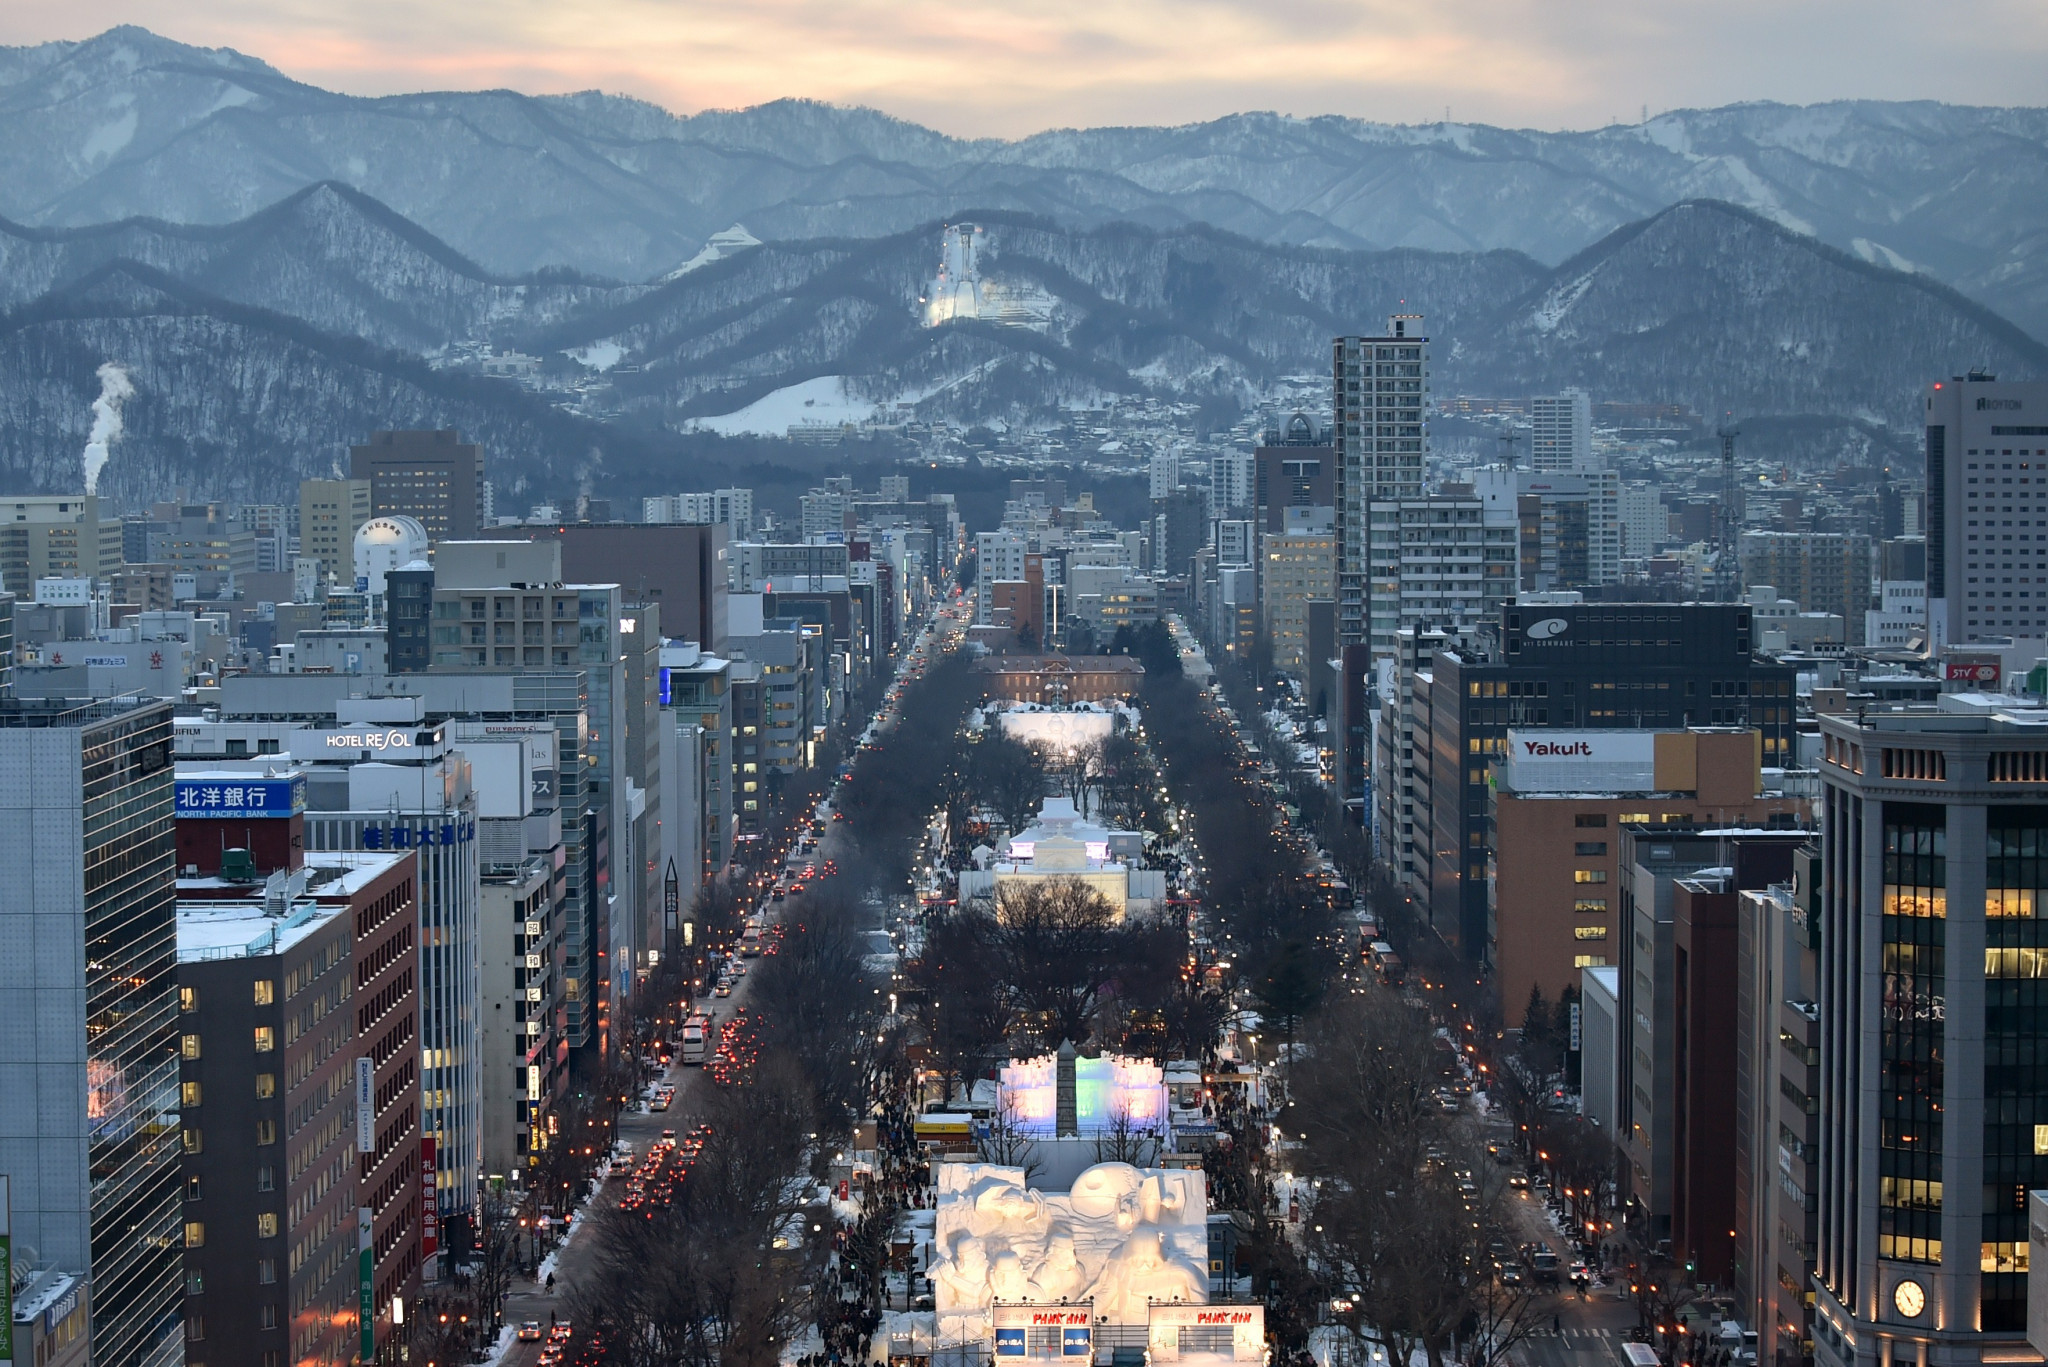 Sapporo is set to enter the race to host the 2030 Winter Olympic and Paralympic Games ©Getty Images